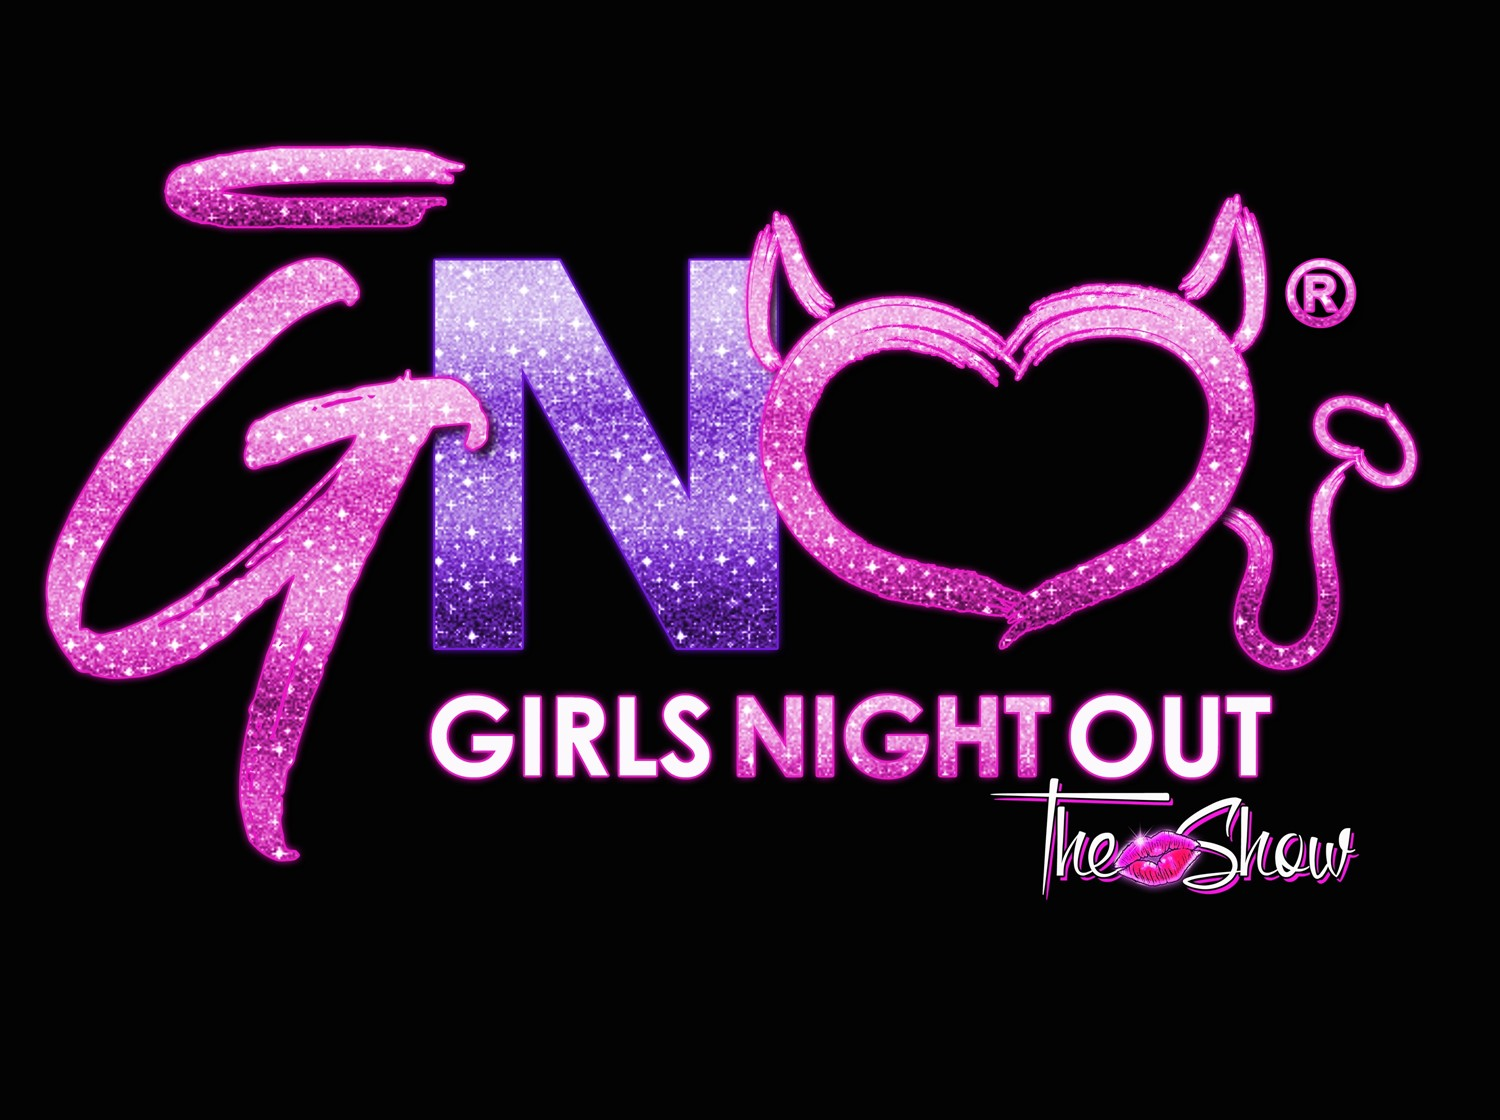 Genesis (21+) Athens, GA on may. 29, 20:00@Genesis - Buy tickets and Get information on Girls Night Out the Show tickets.girlsnightouttheshow.com